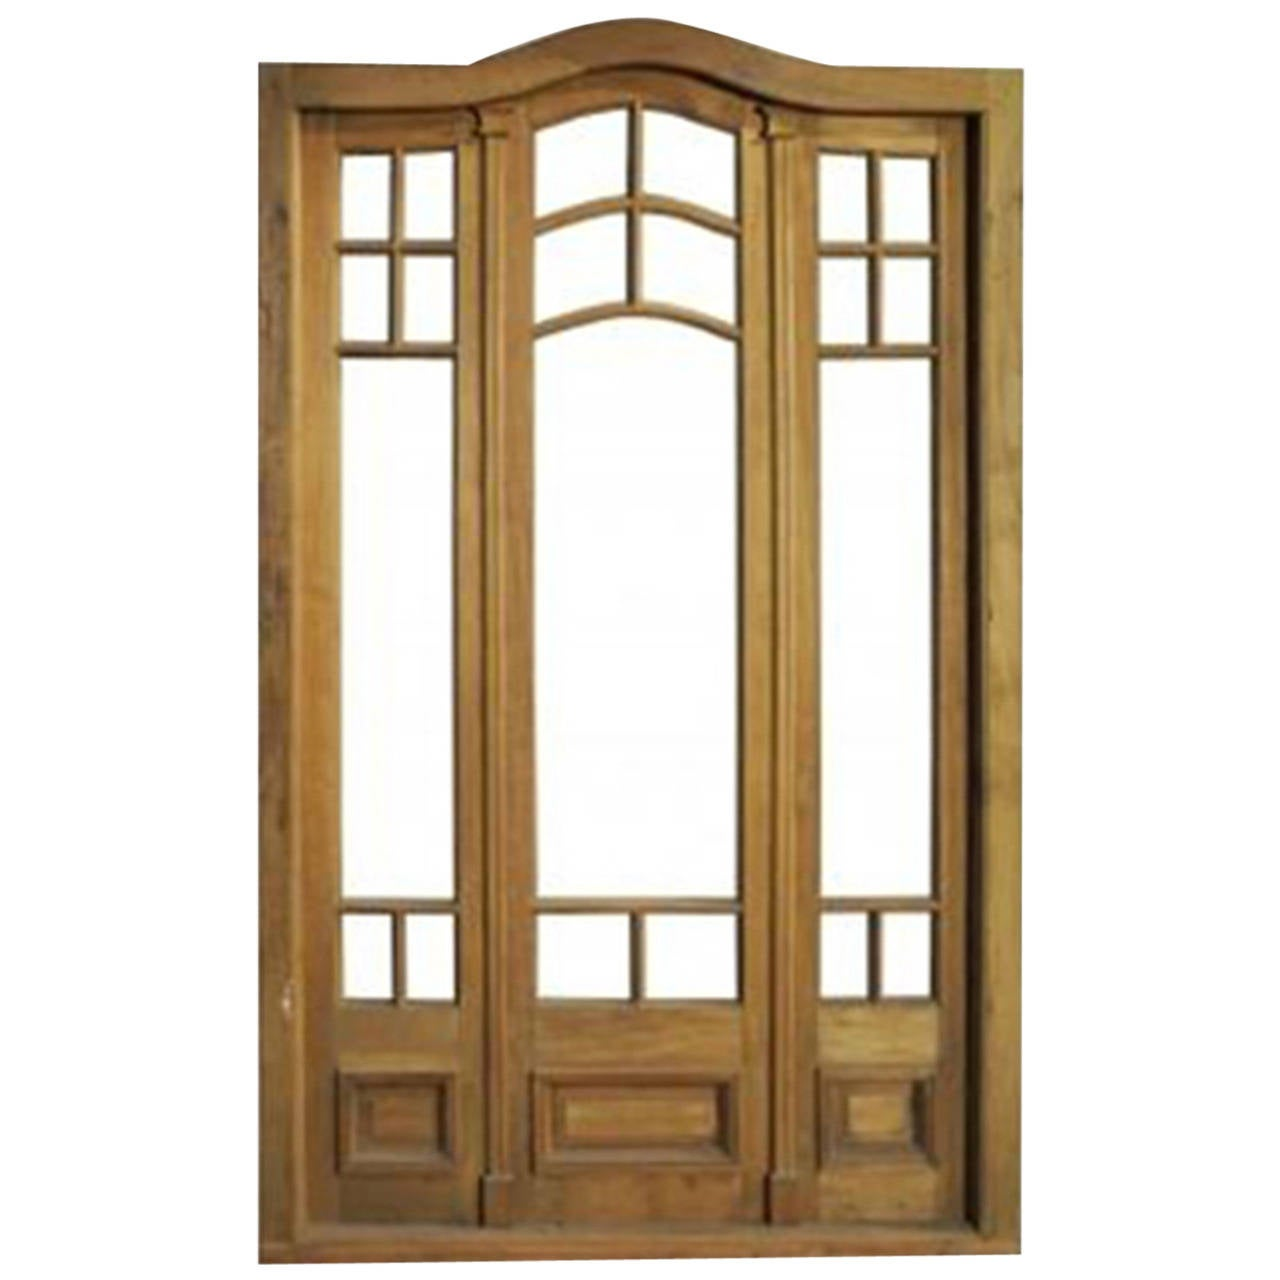 Antique Triple French Patio Door At 1stdibs